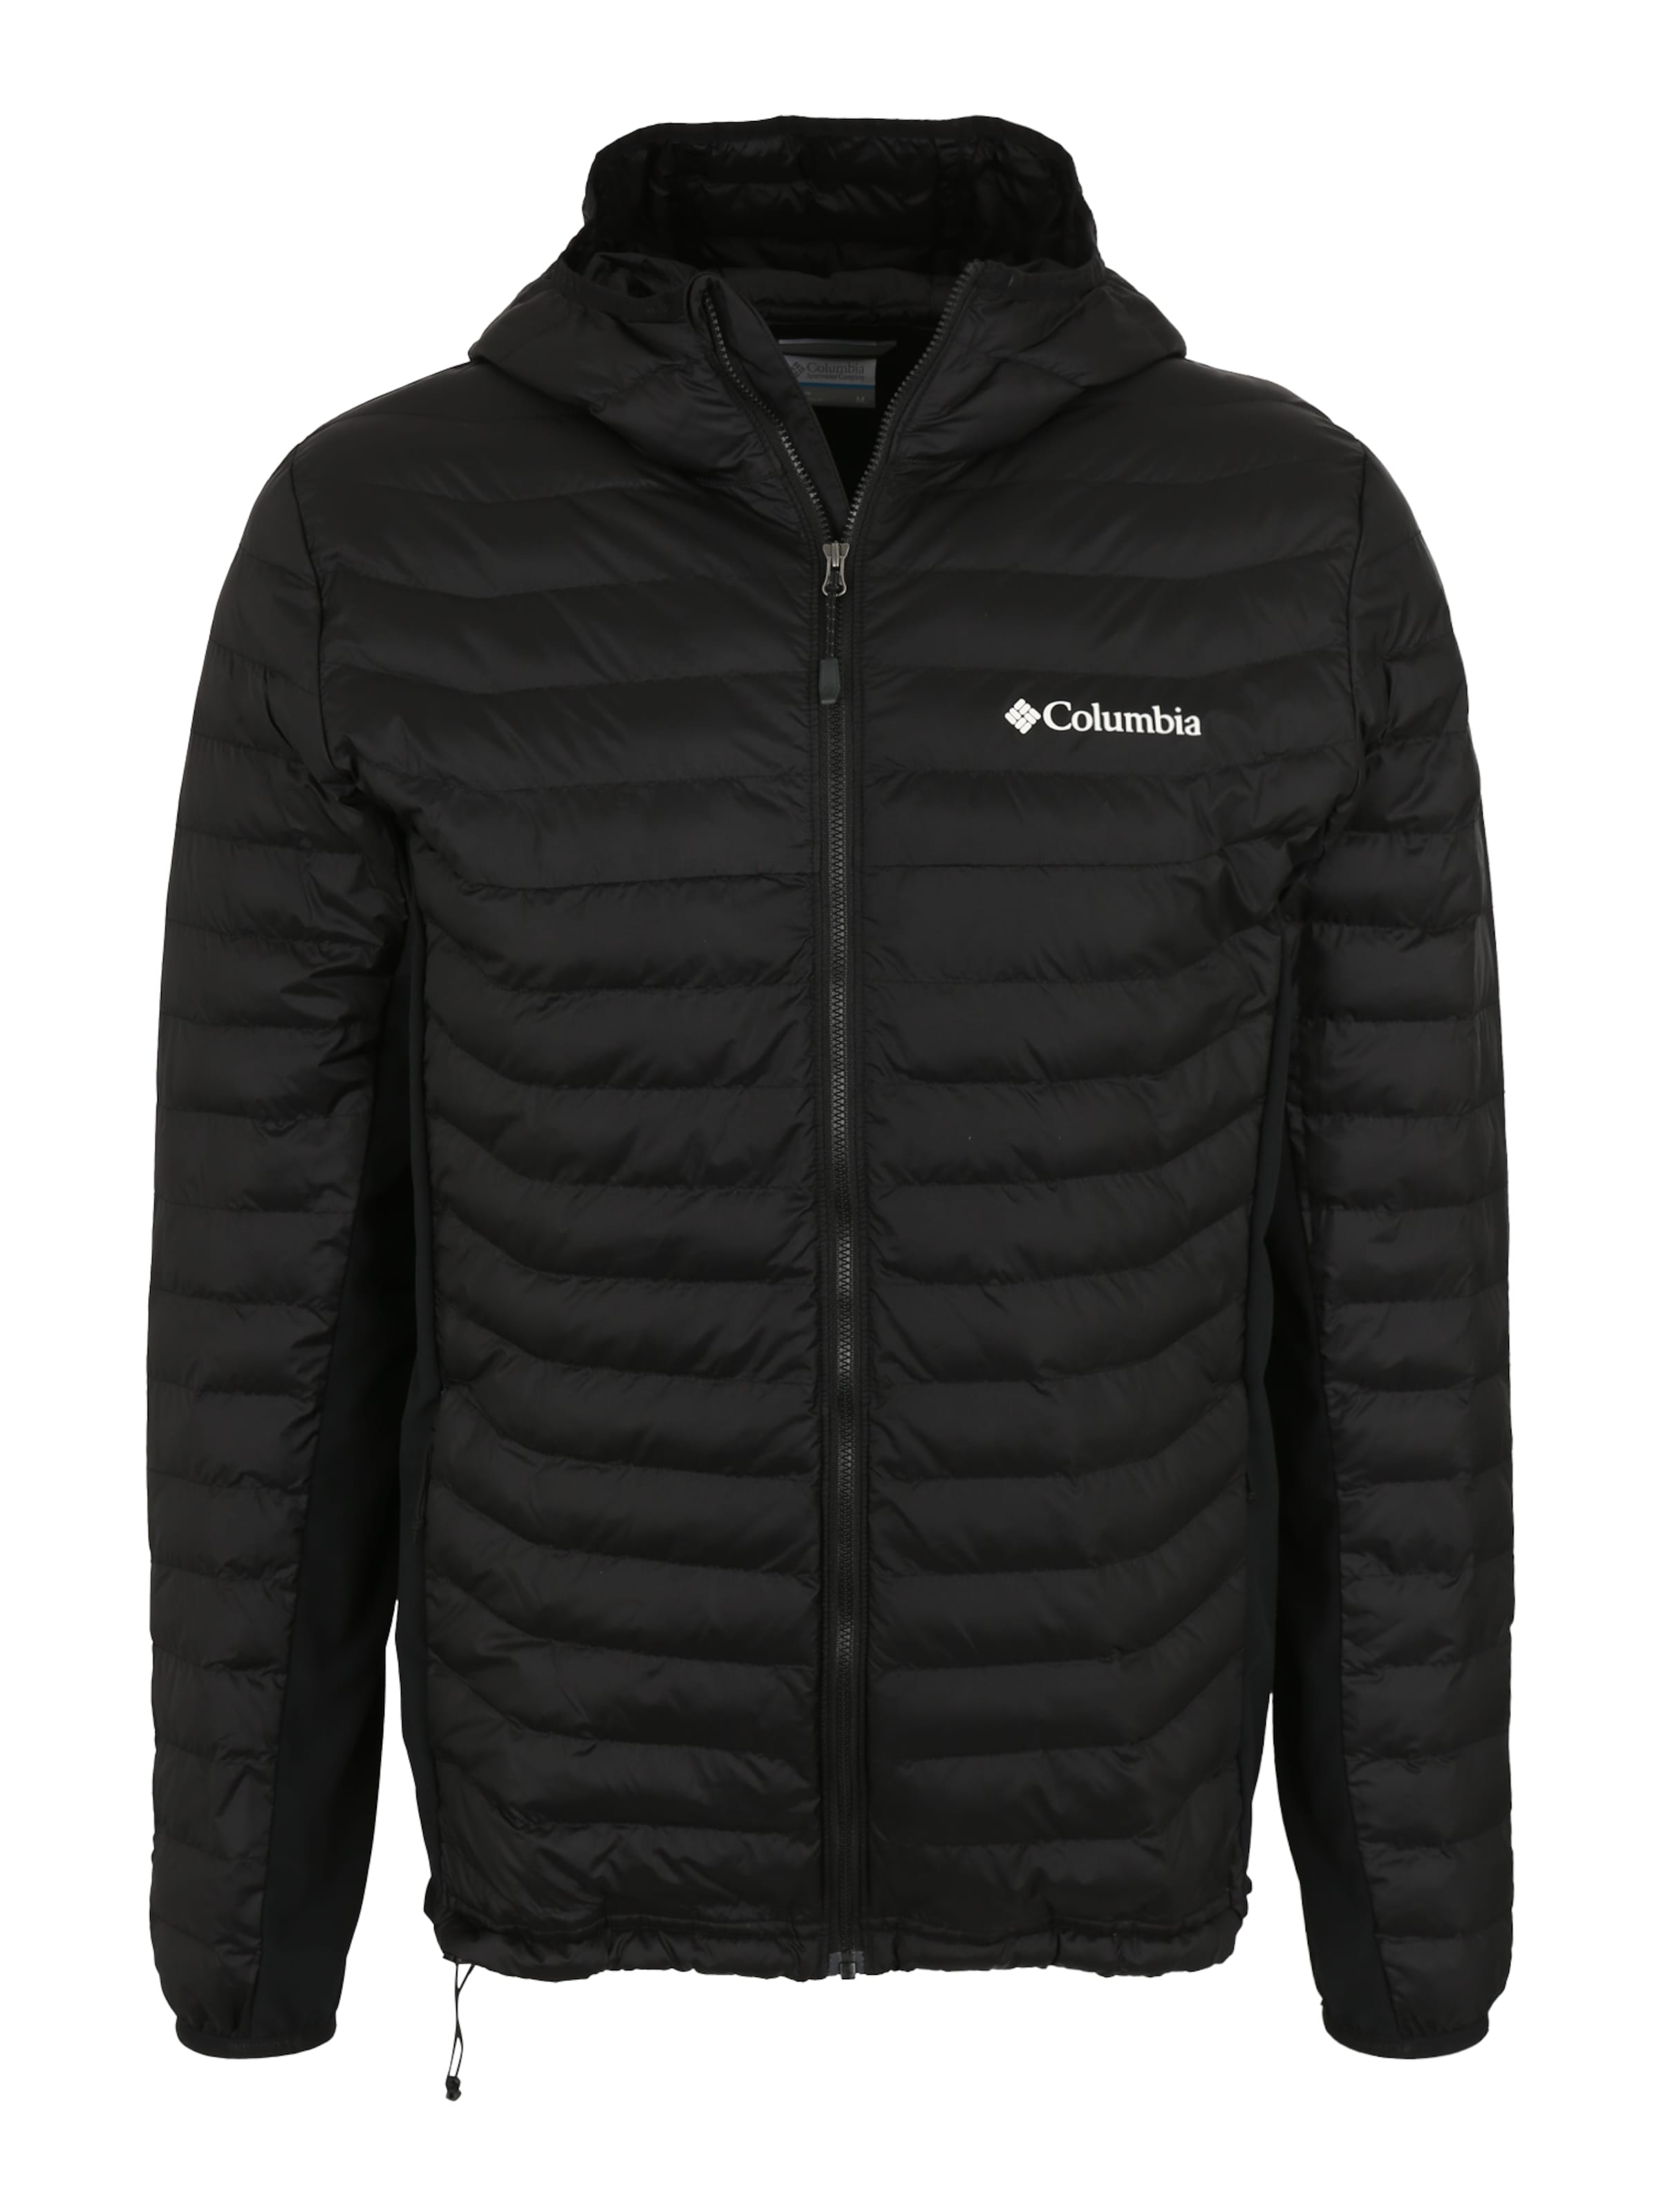 Sportjacke Hooded' 'powder In Schwarz Pass Columbia qUzSVGLMp